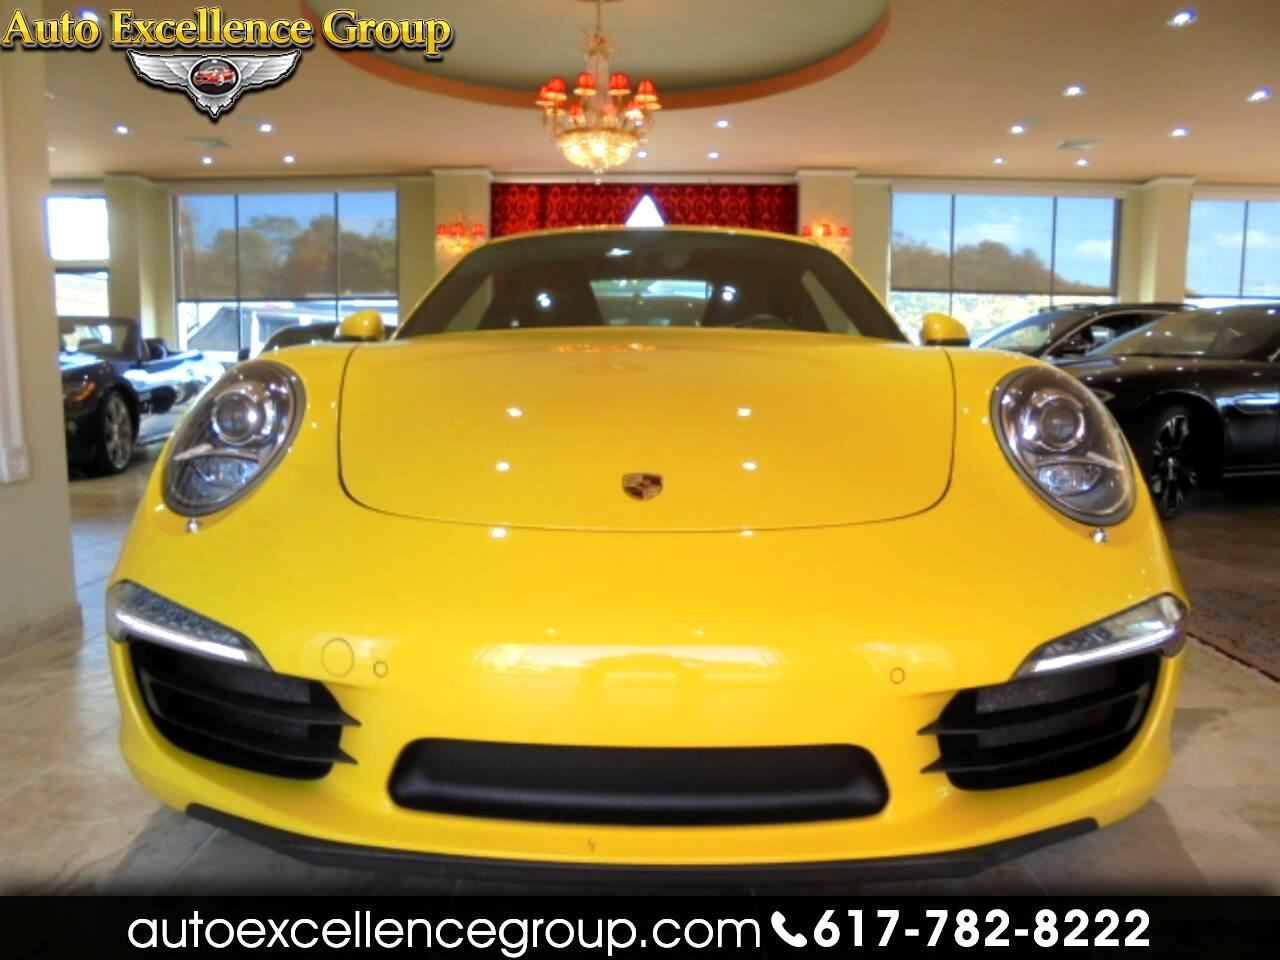 2014 Porsche 911 Carrera 4S Coupe